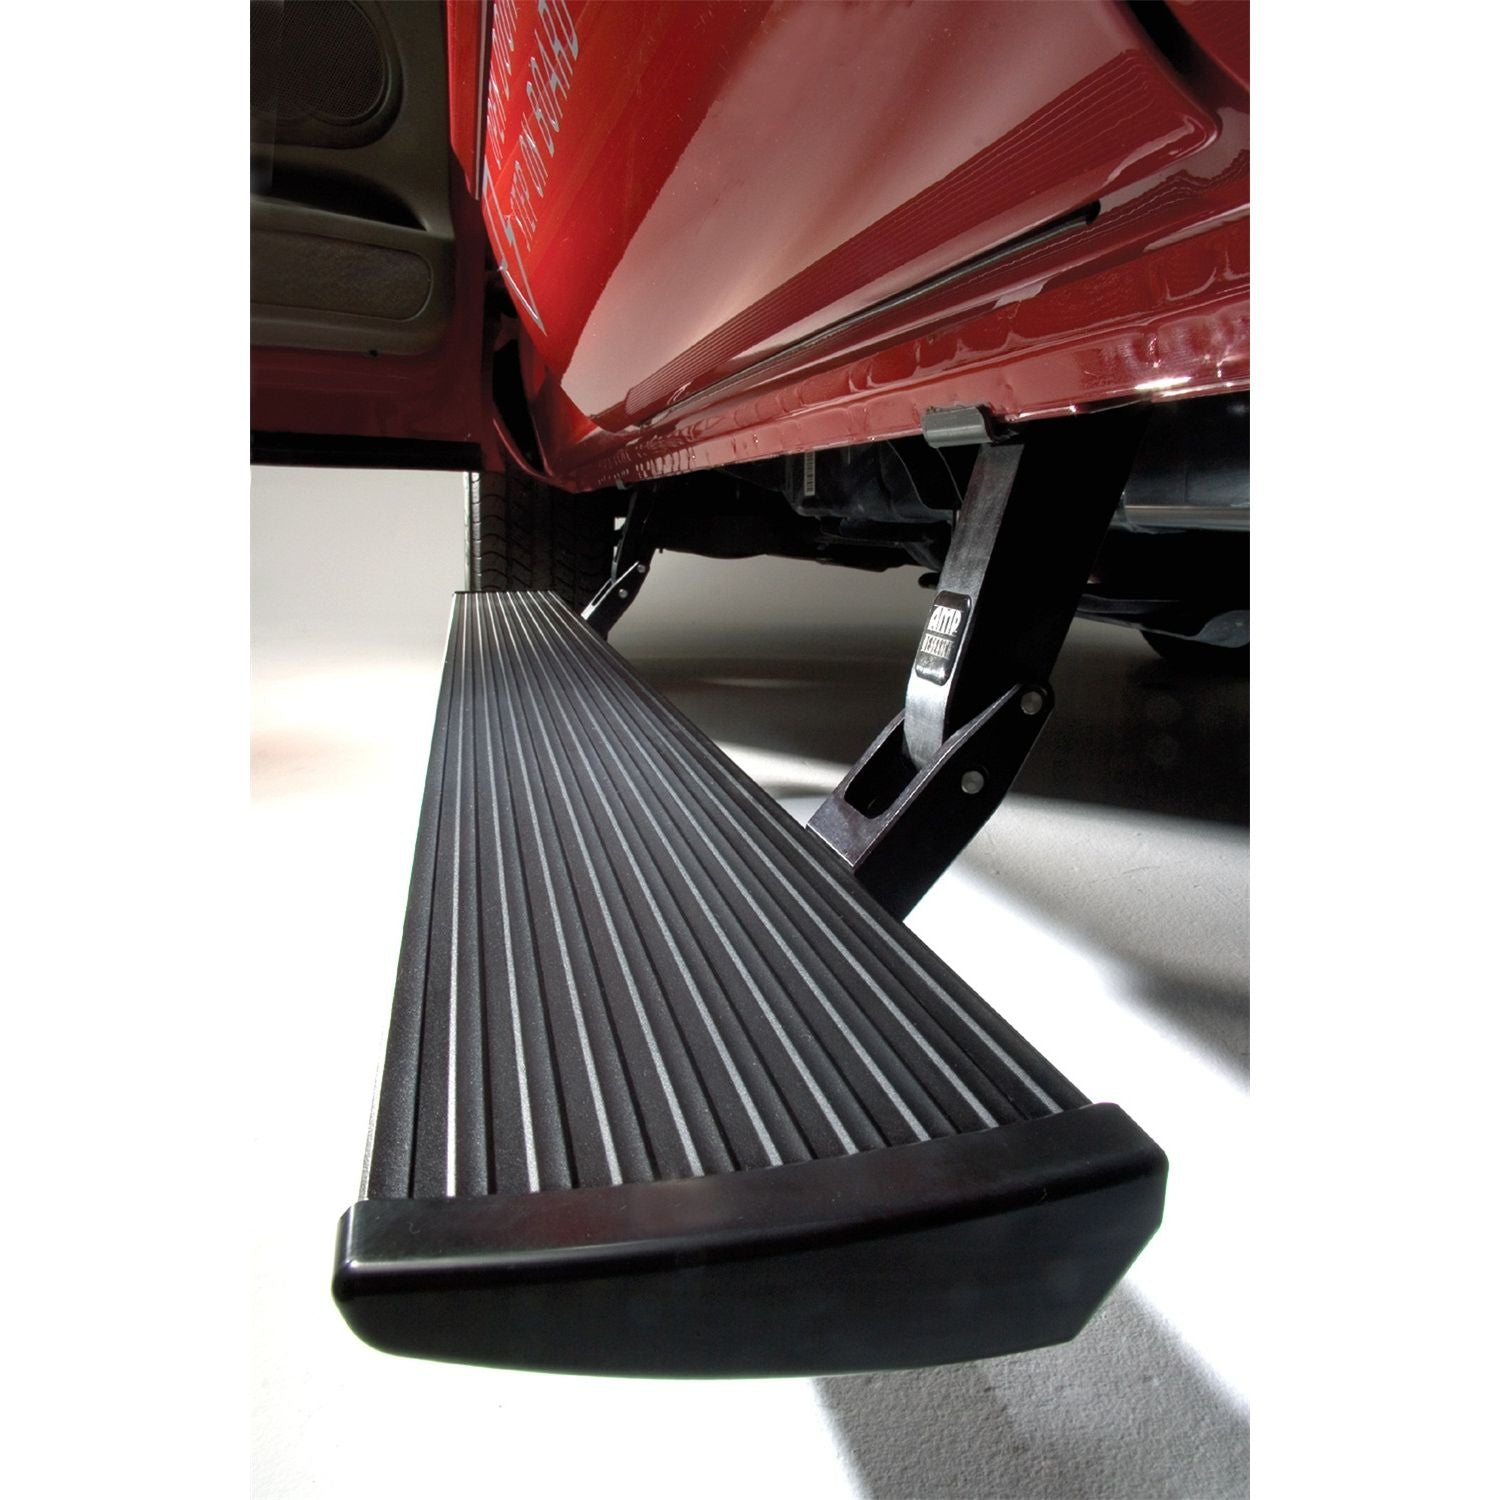 AMP Research PowerStep Electric Running Boards for 2006-2009 Dodge Ram 1500/2500/3500 Mega Cab - 75118-01A